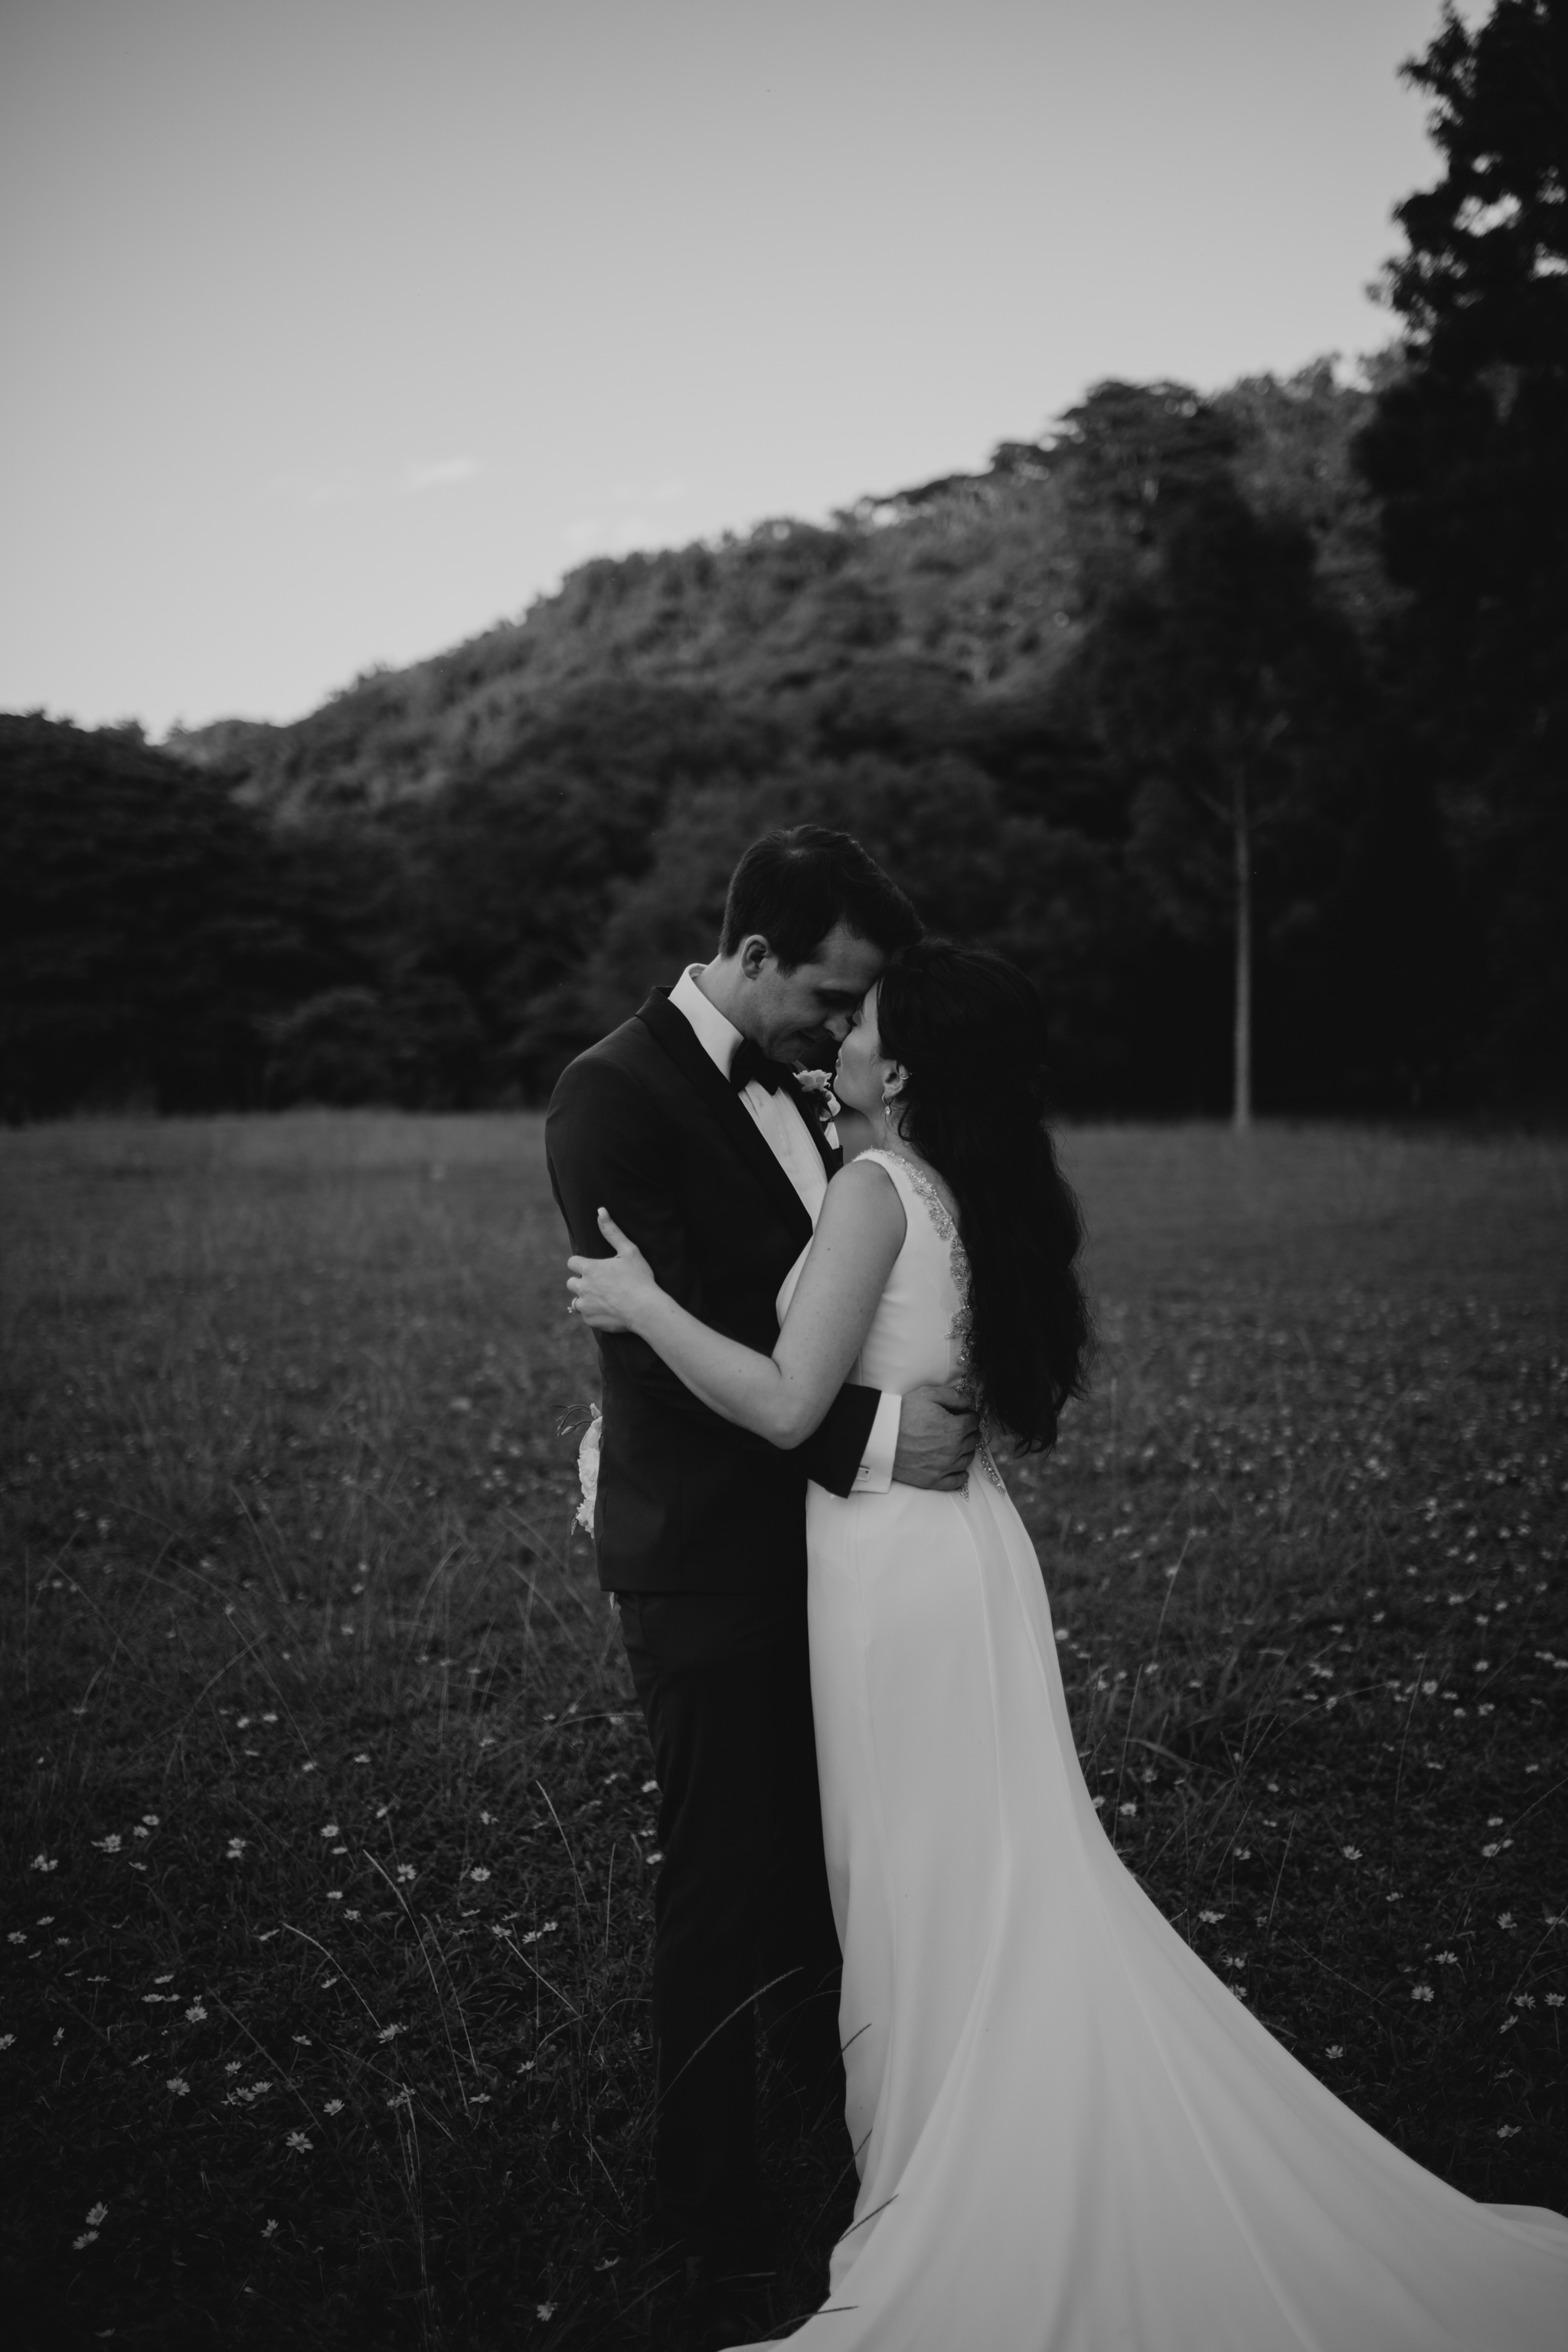 Beautiful Kauai Elopement by Hawaii Wedding Photographer Desiree Leilani